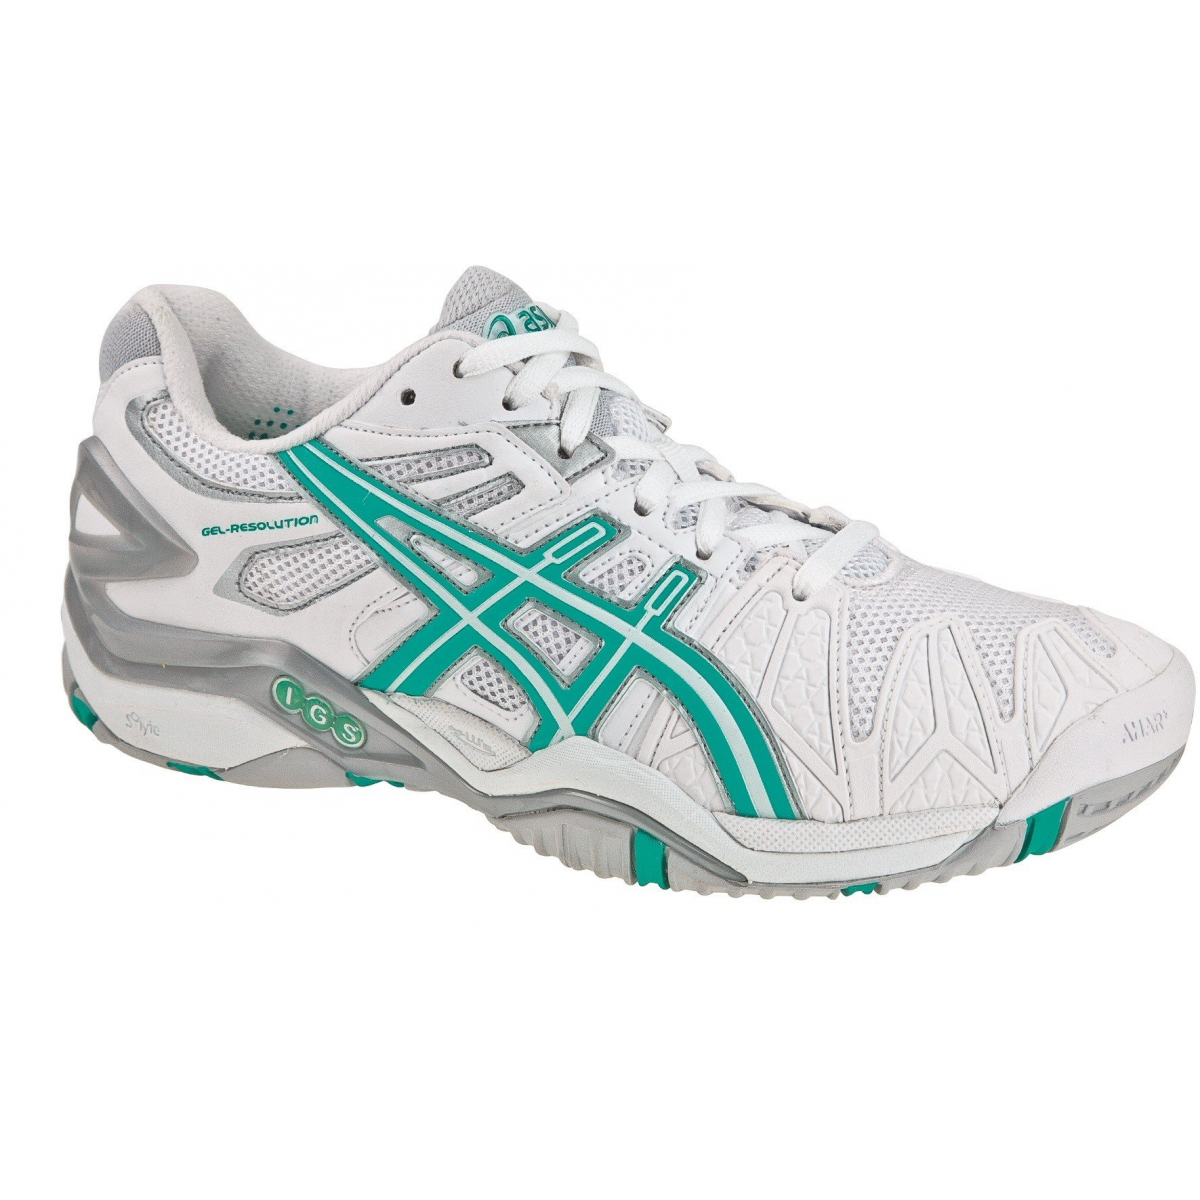 best website best choice sale uk Asics Gel Resolution 5 weiss/türkis Tennisschuhe Damen (Größe 42,5)